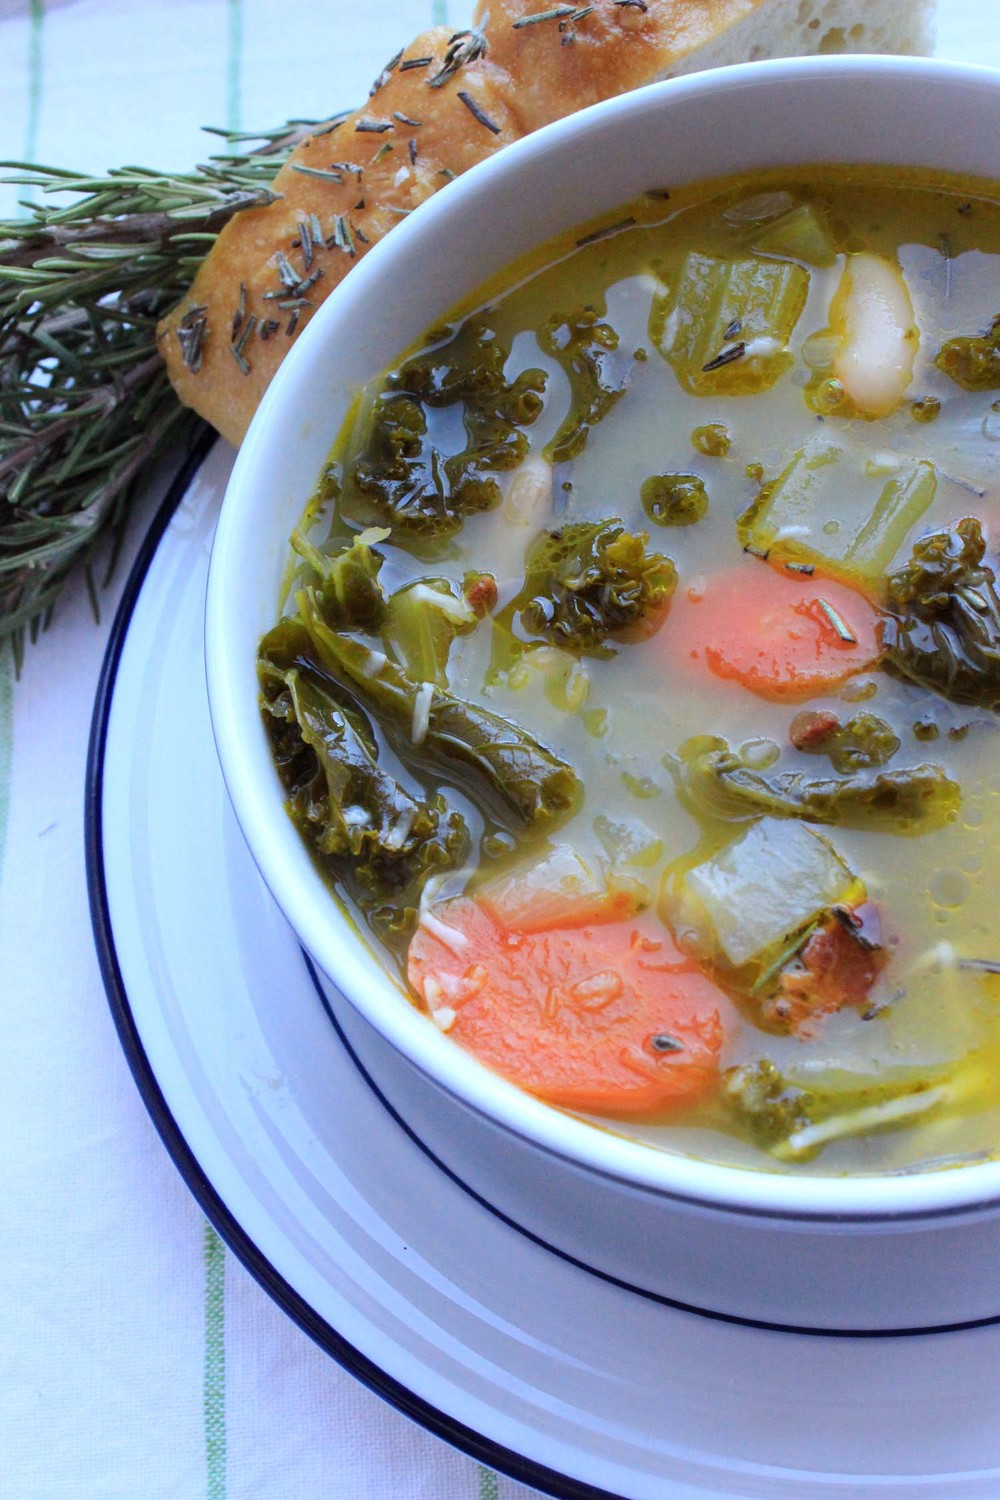 Tuscan White Bean & Kale Soup   | Image:   Laura Messersmith